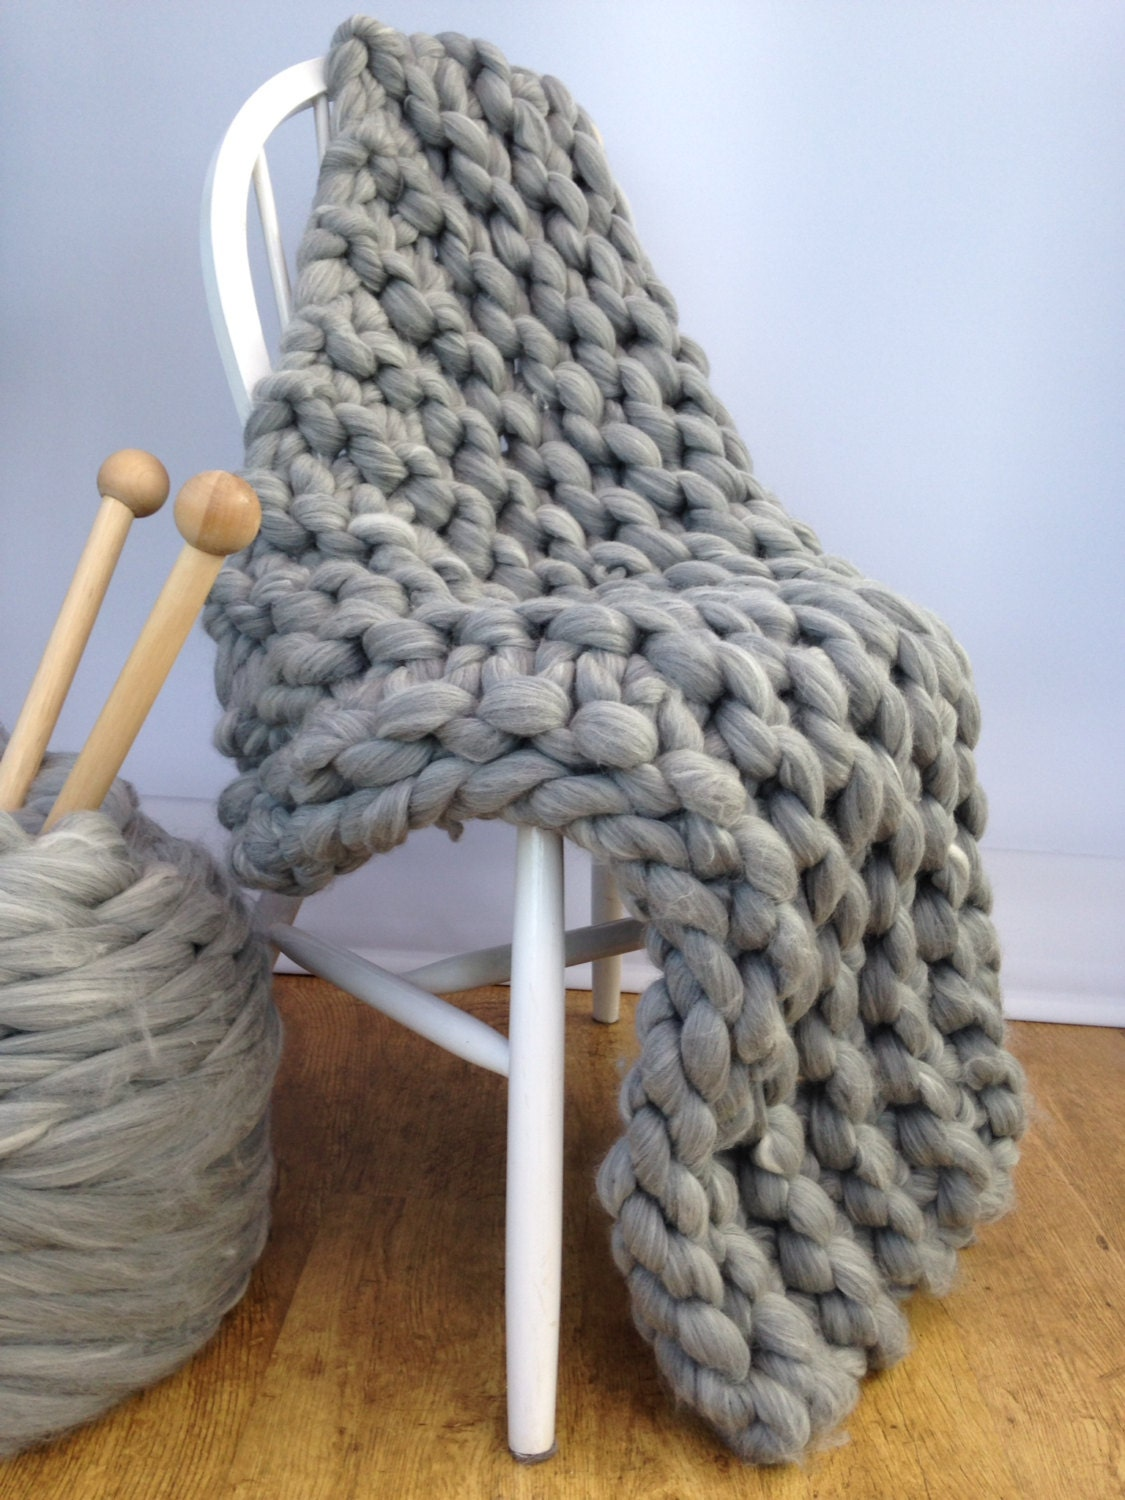 Knitting Patterns Kits : Blanket KNITTING KIT. Giant 40mm Knitting by WoolCoutureCompany